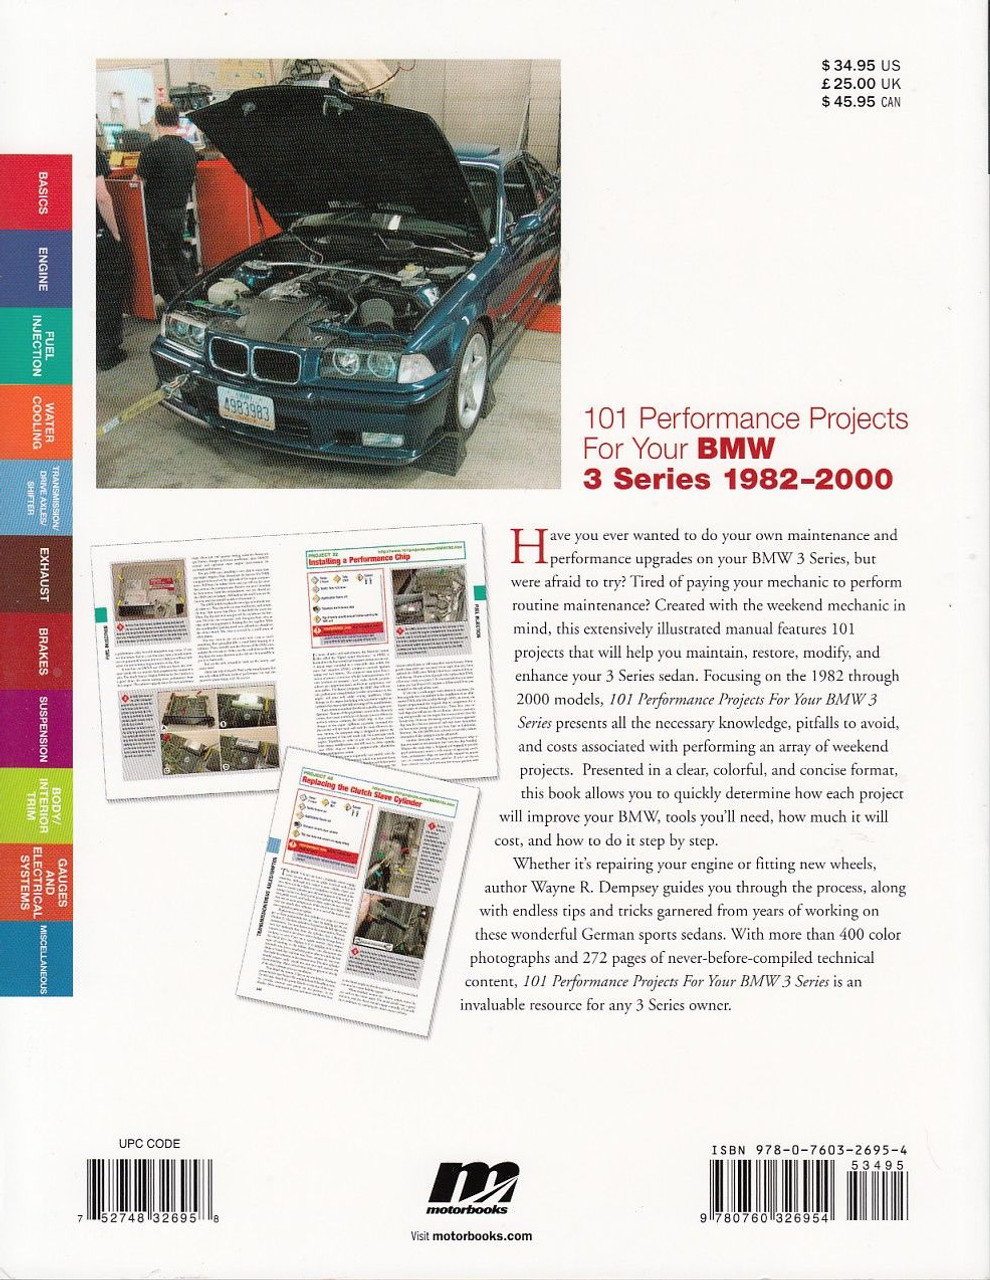 ... 101 Performance Projects for Your BMW 3 Series 1982-2000 Back Cover ...